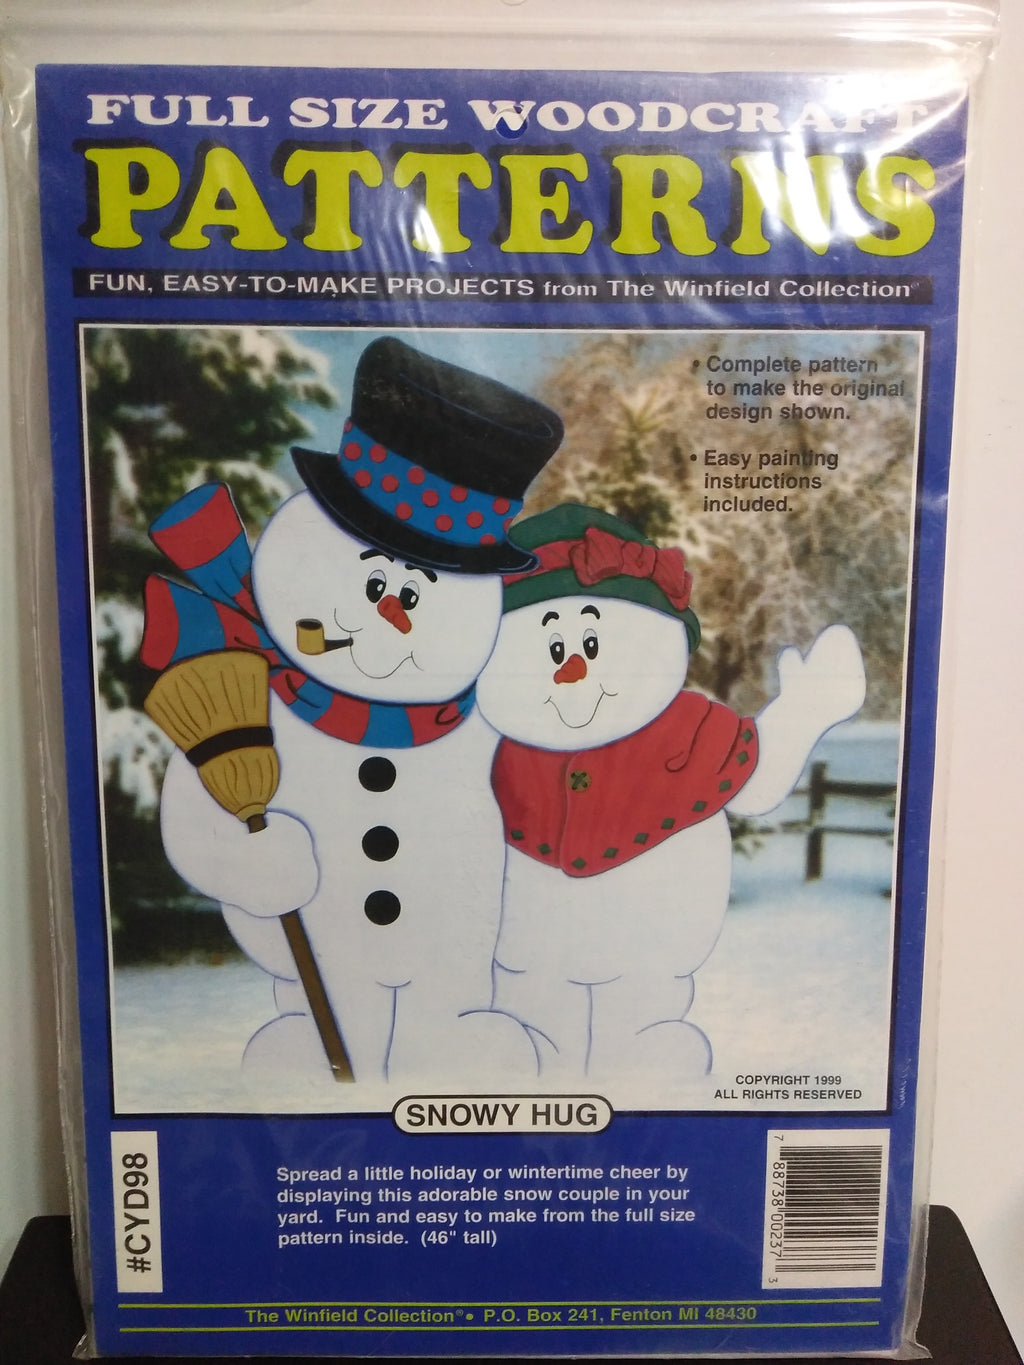 Snowman Wooden Patterns Snowy Hug-We Got Character